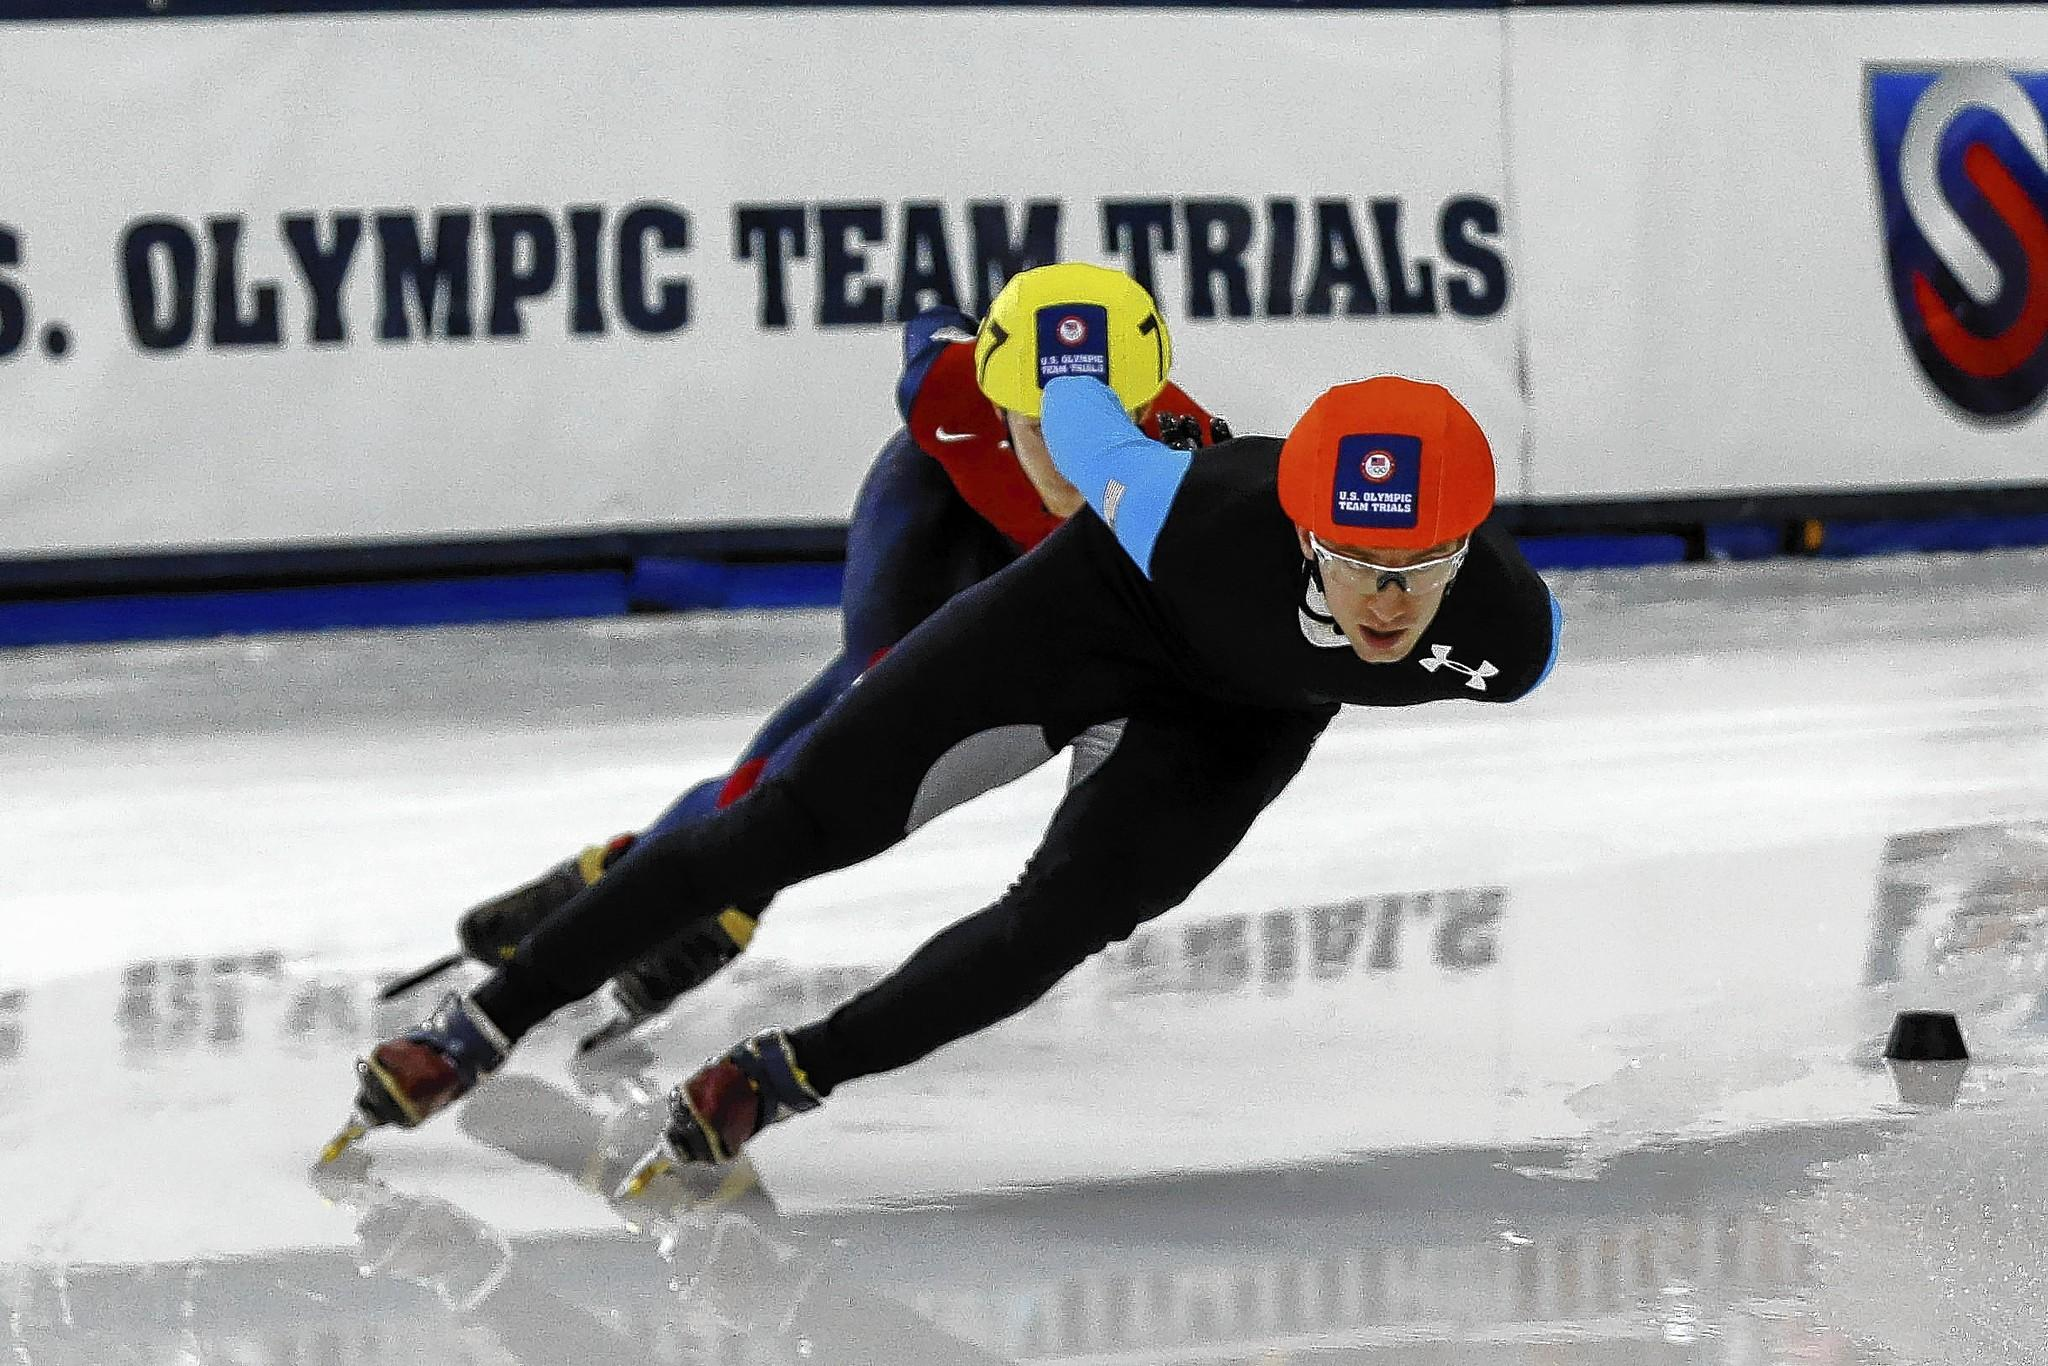 Jan 5, 2014; Kearns, UT, USA; Chris Creveling competes in the 1000m of the U.S. Olympic short track speedskating trials at Utah Olympic Oval.